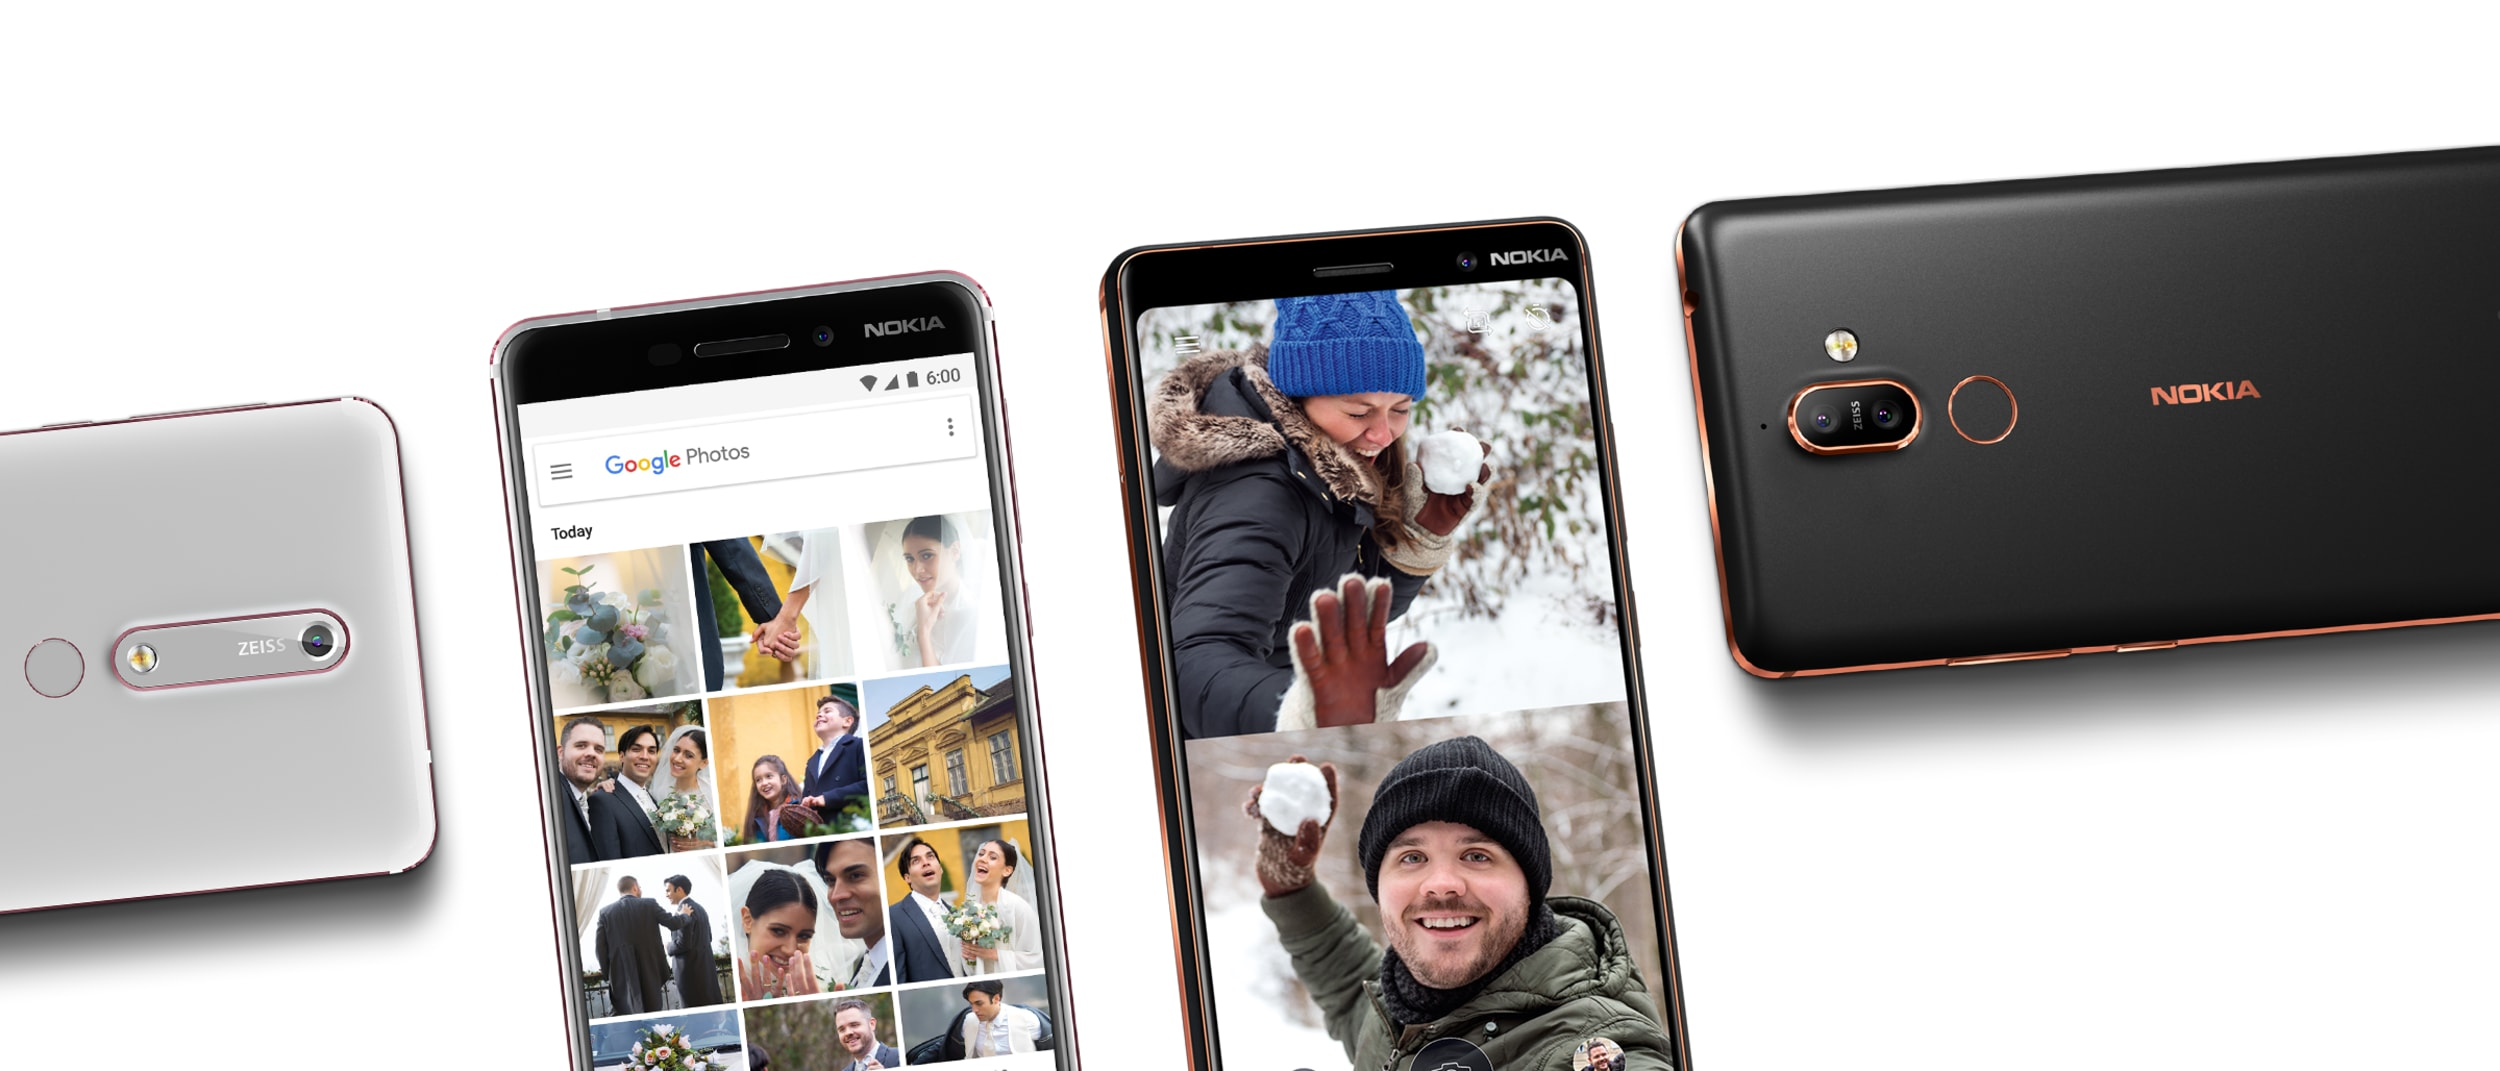 New Nokia phones with the latest Google innovations